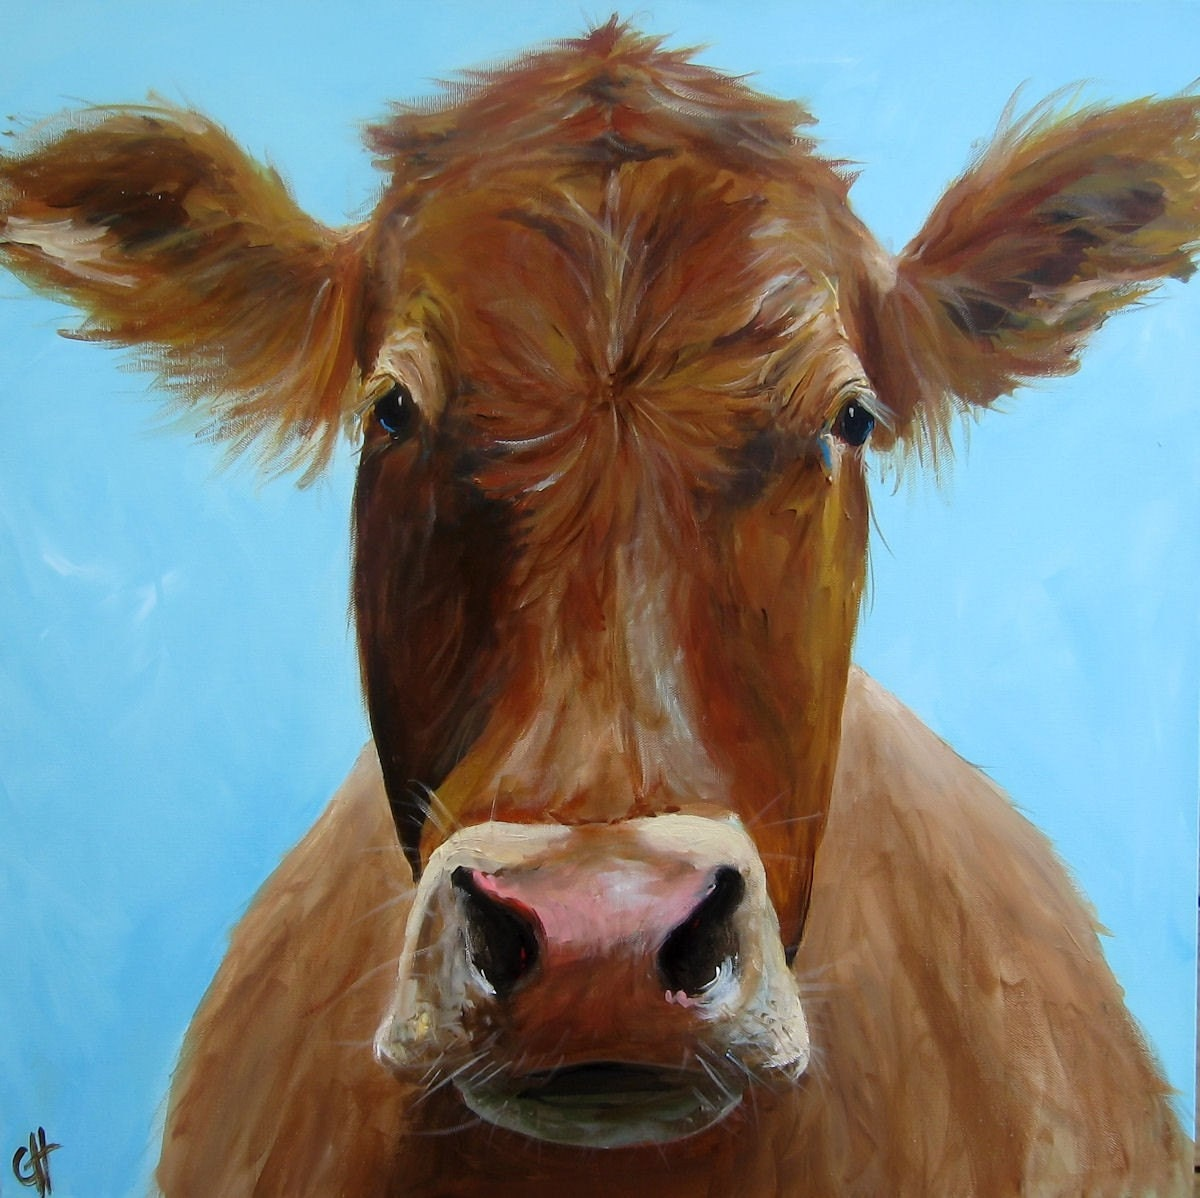 Iris the Cow - Giclee Print of an original painting - 10x10